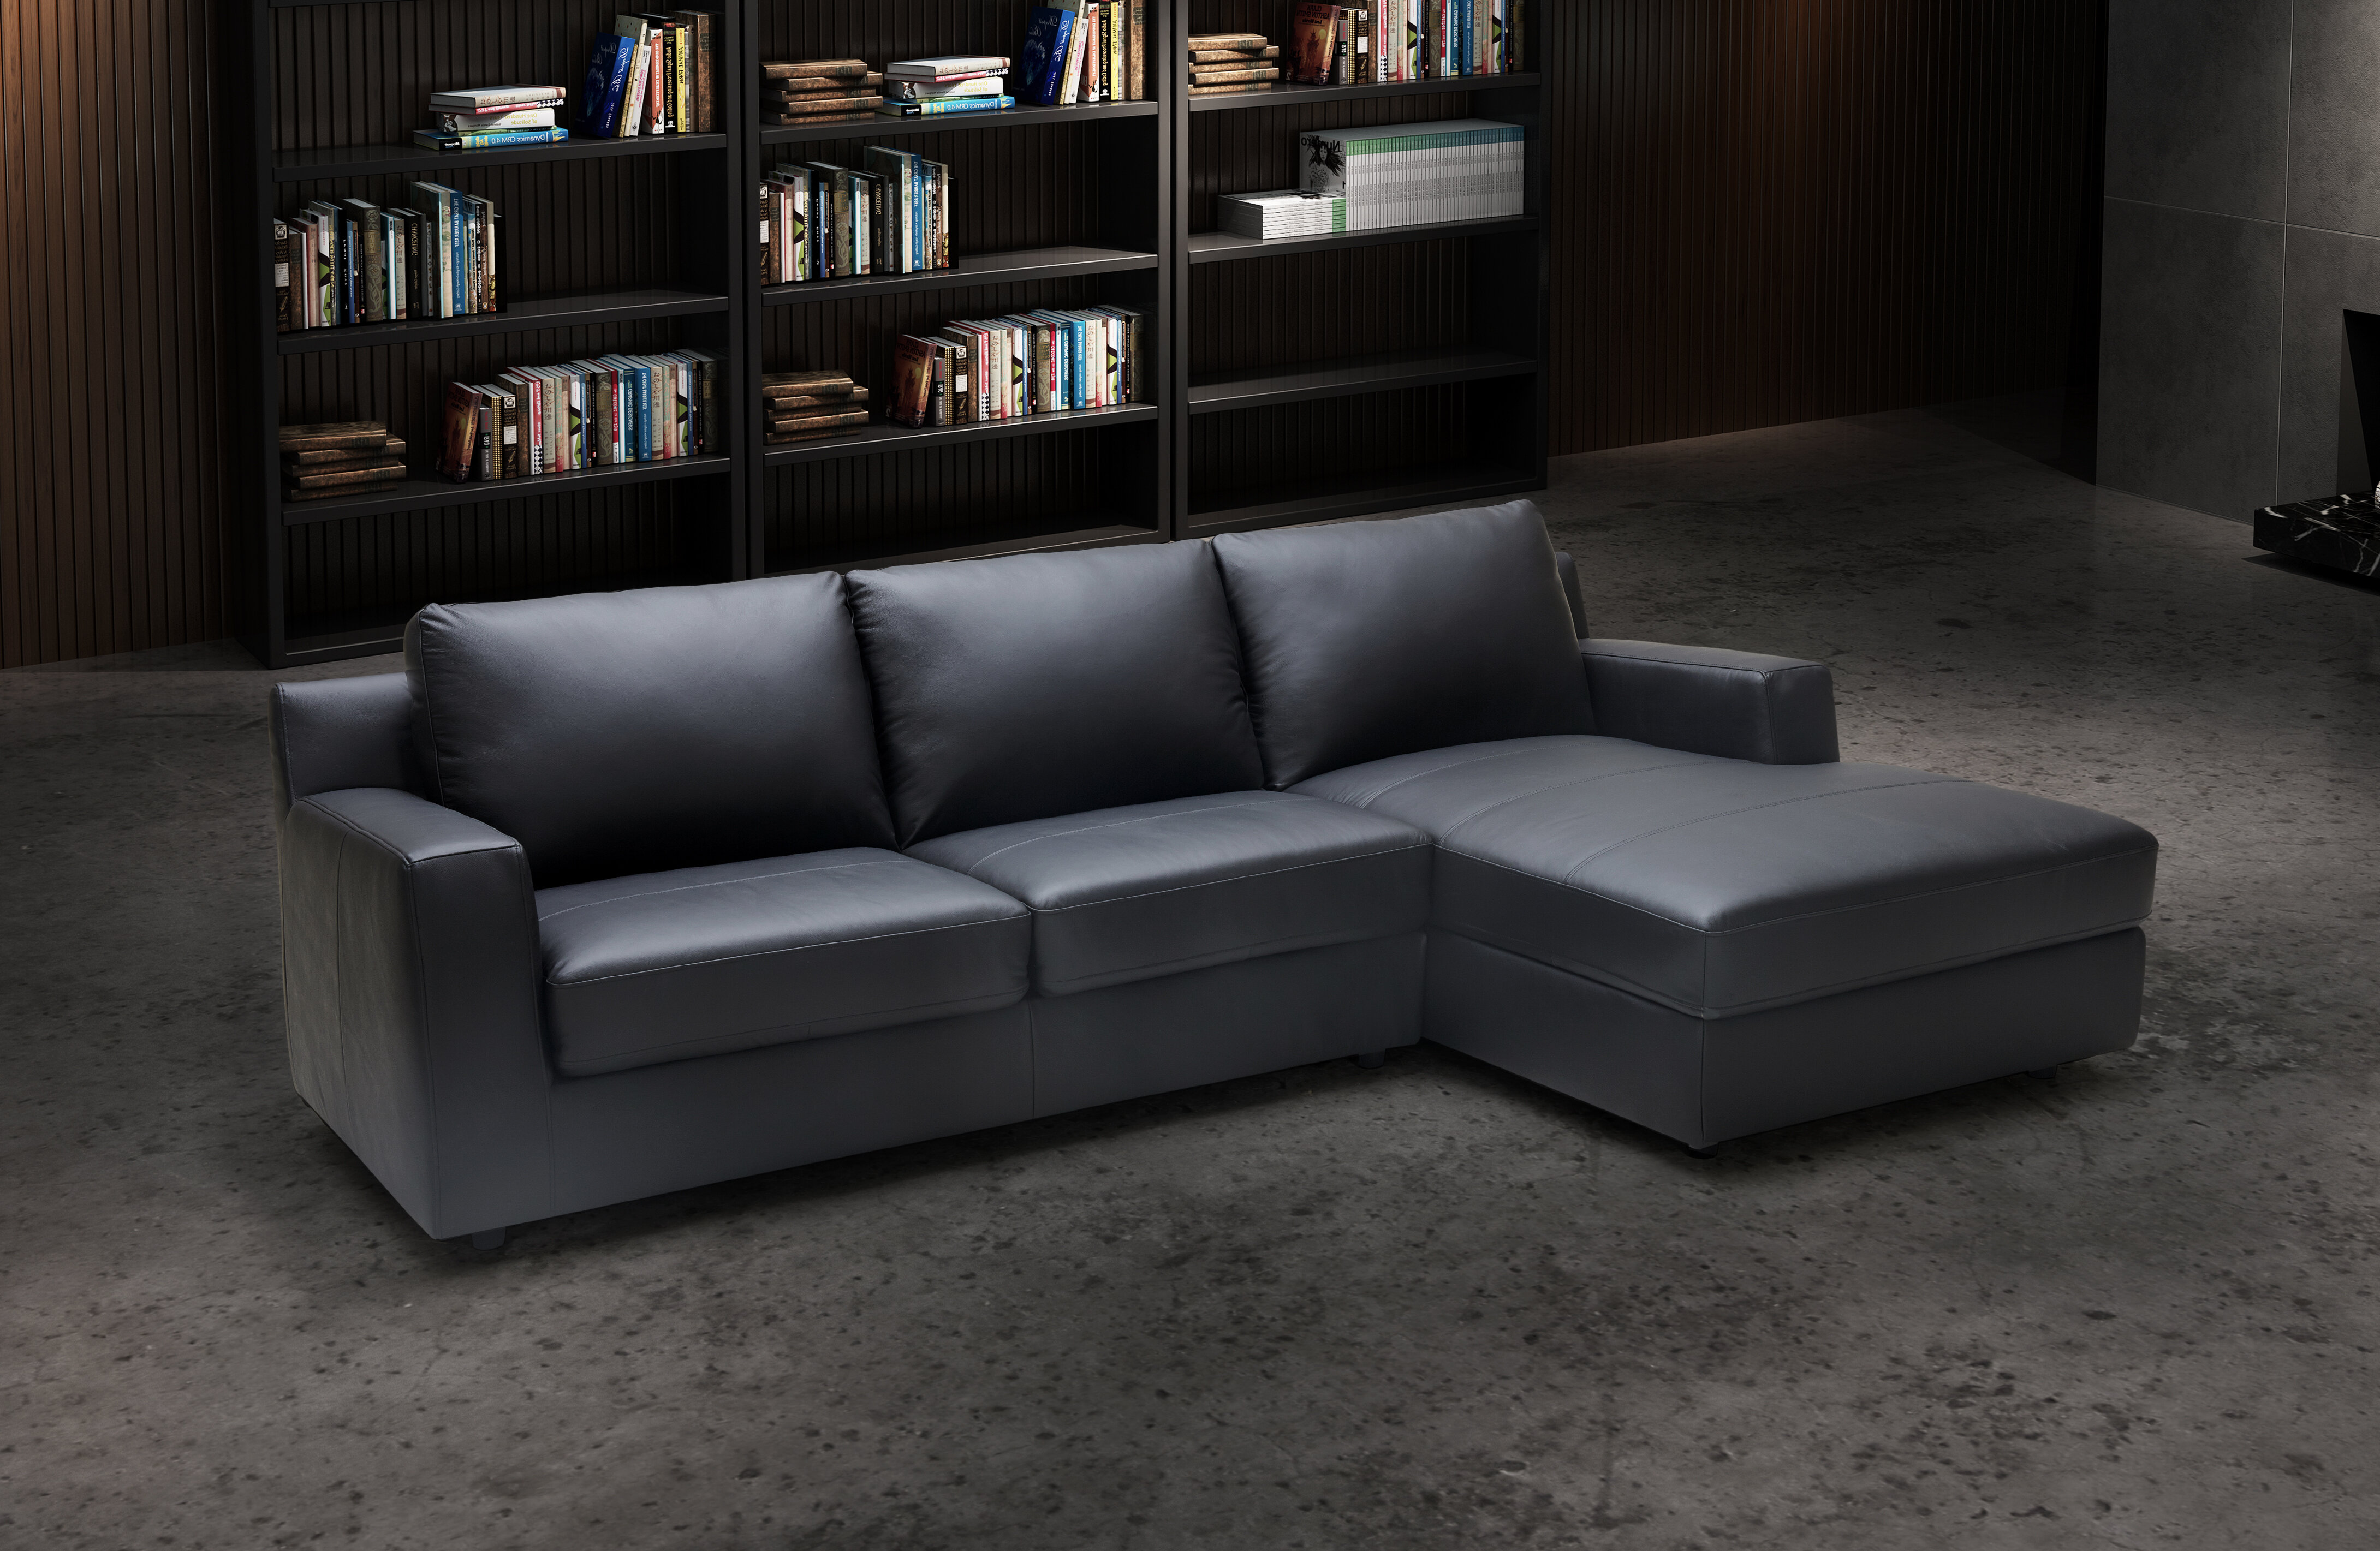 n james z sofas sectionals sleeper b sectional couches boy la image leather